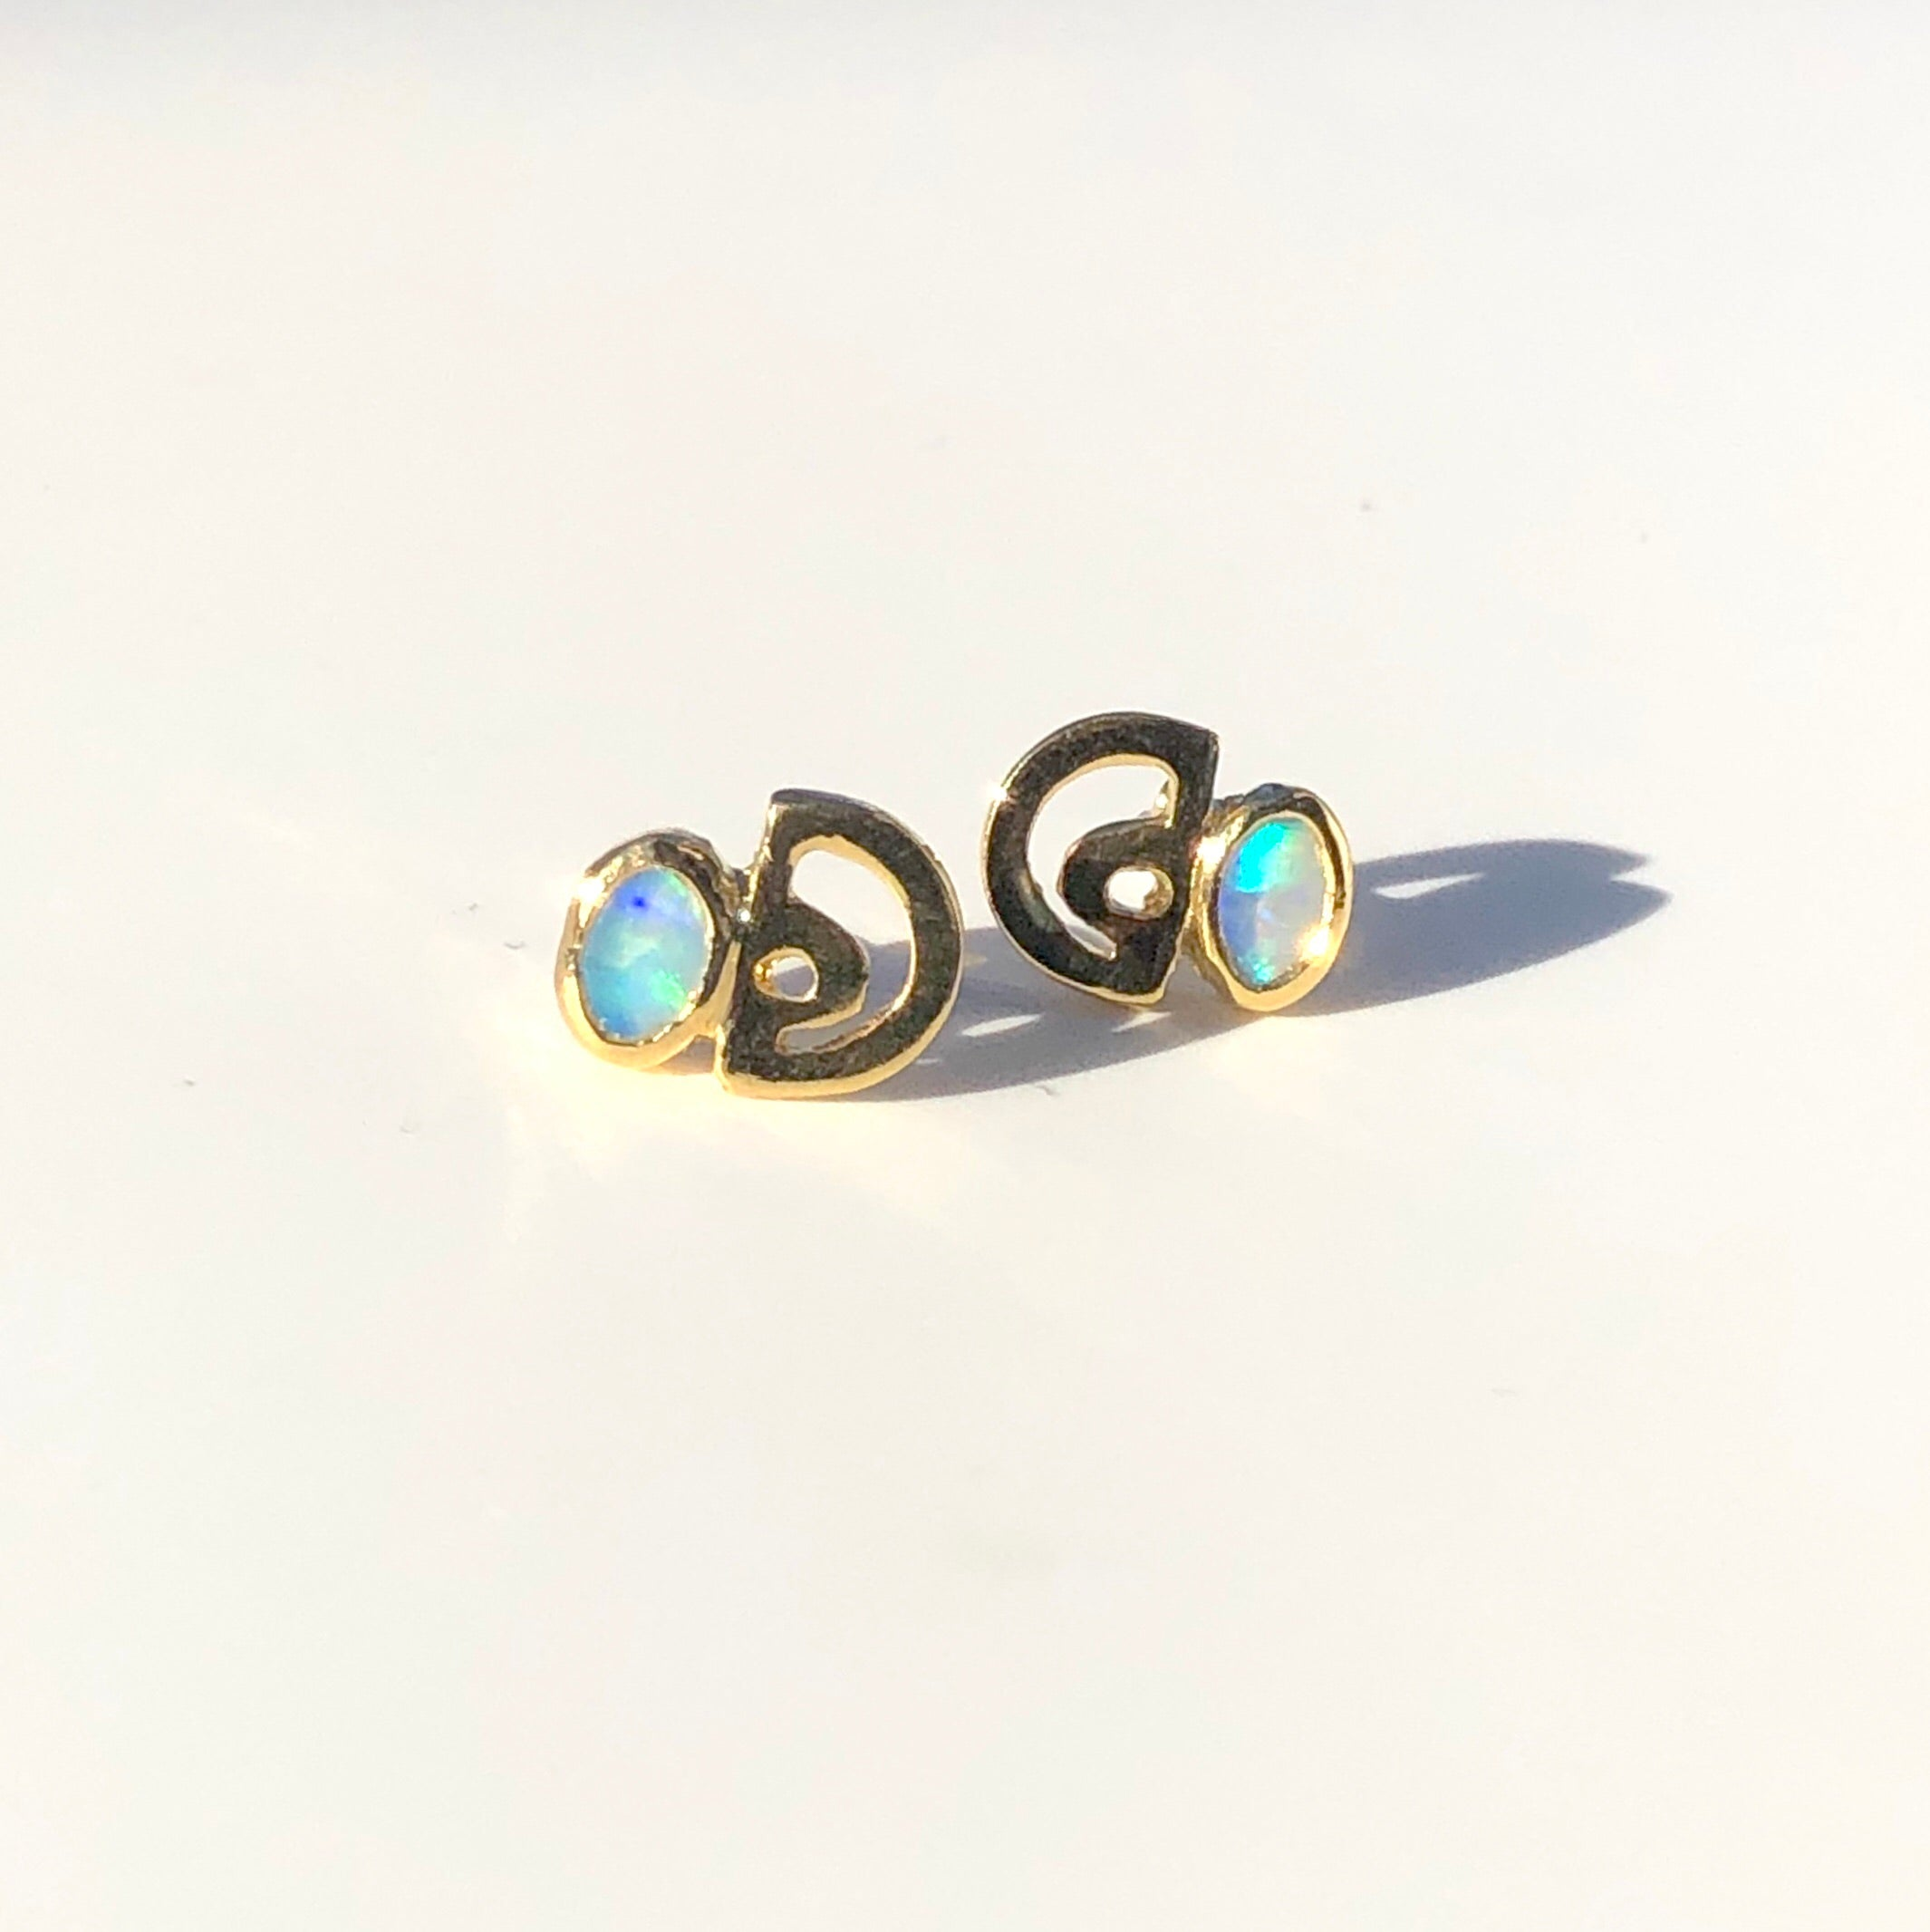 Horizon Opal Stud Earrings